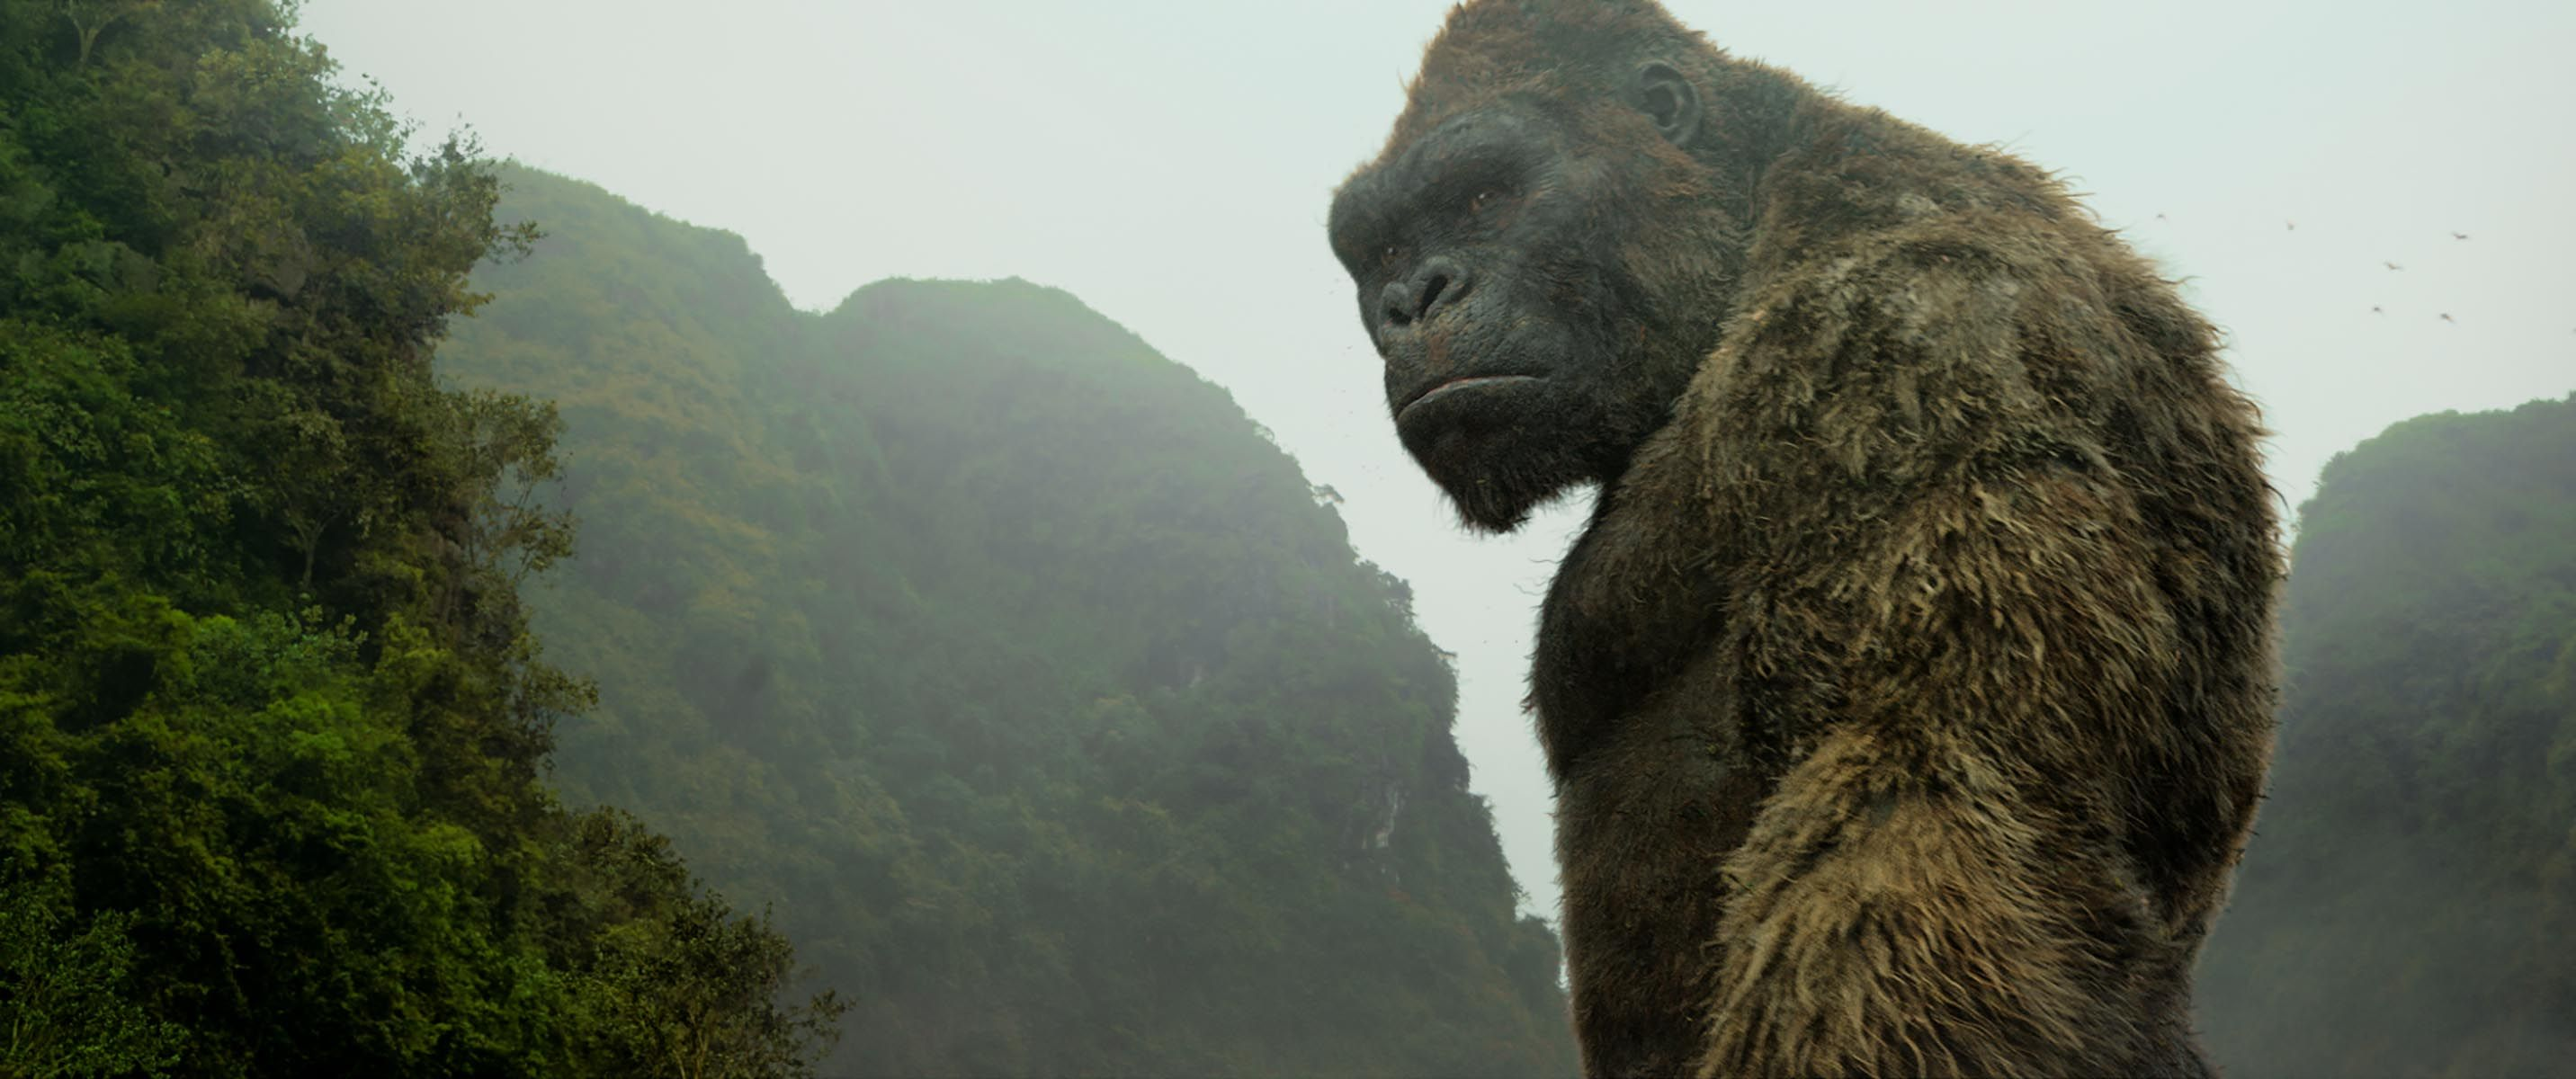 Kong: Skull Island: Check Out Over 40 Images from Reboot ...